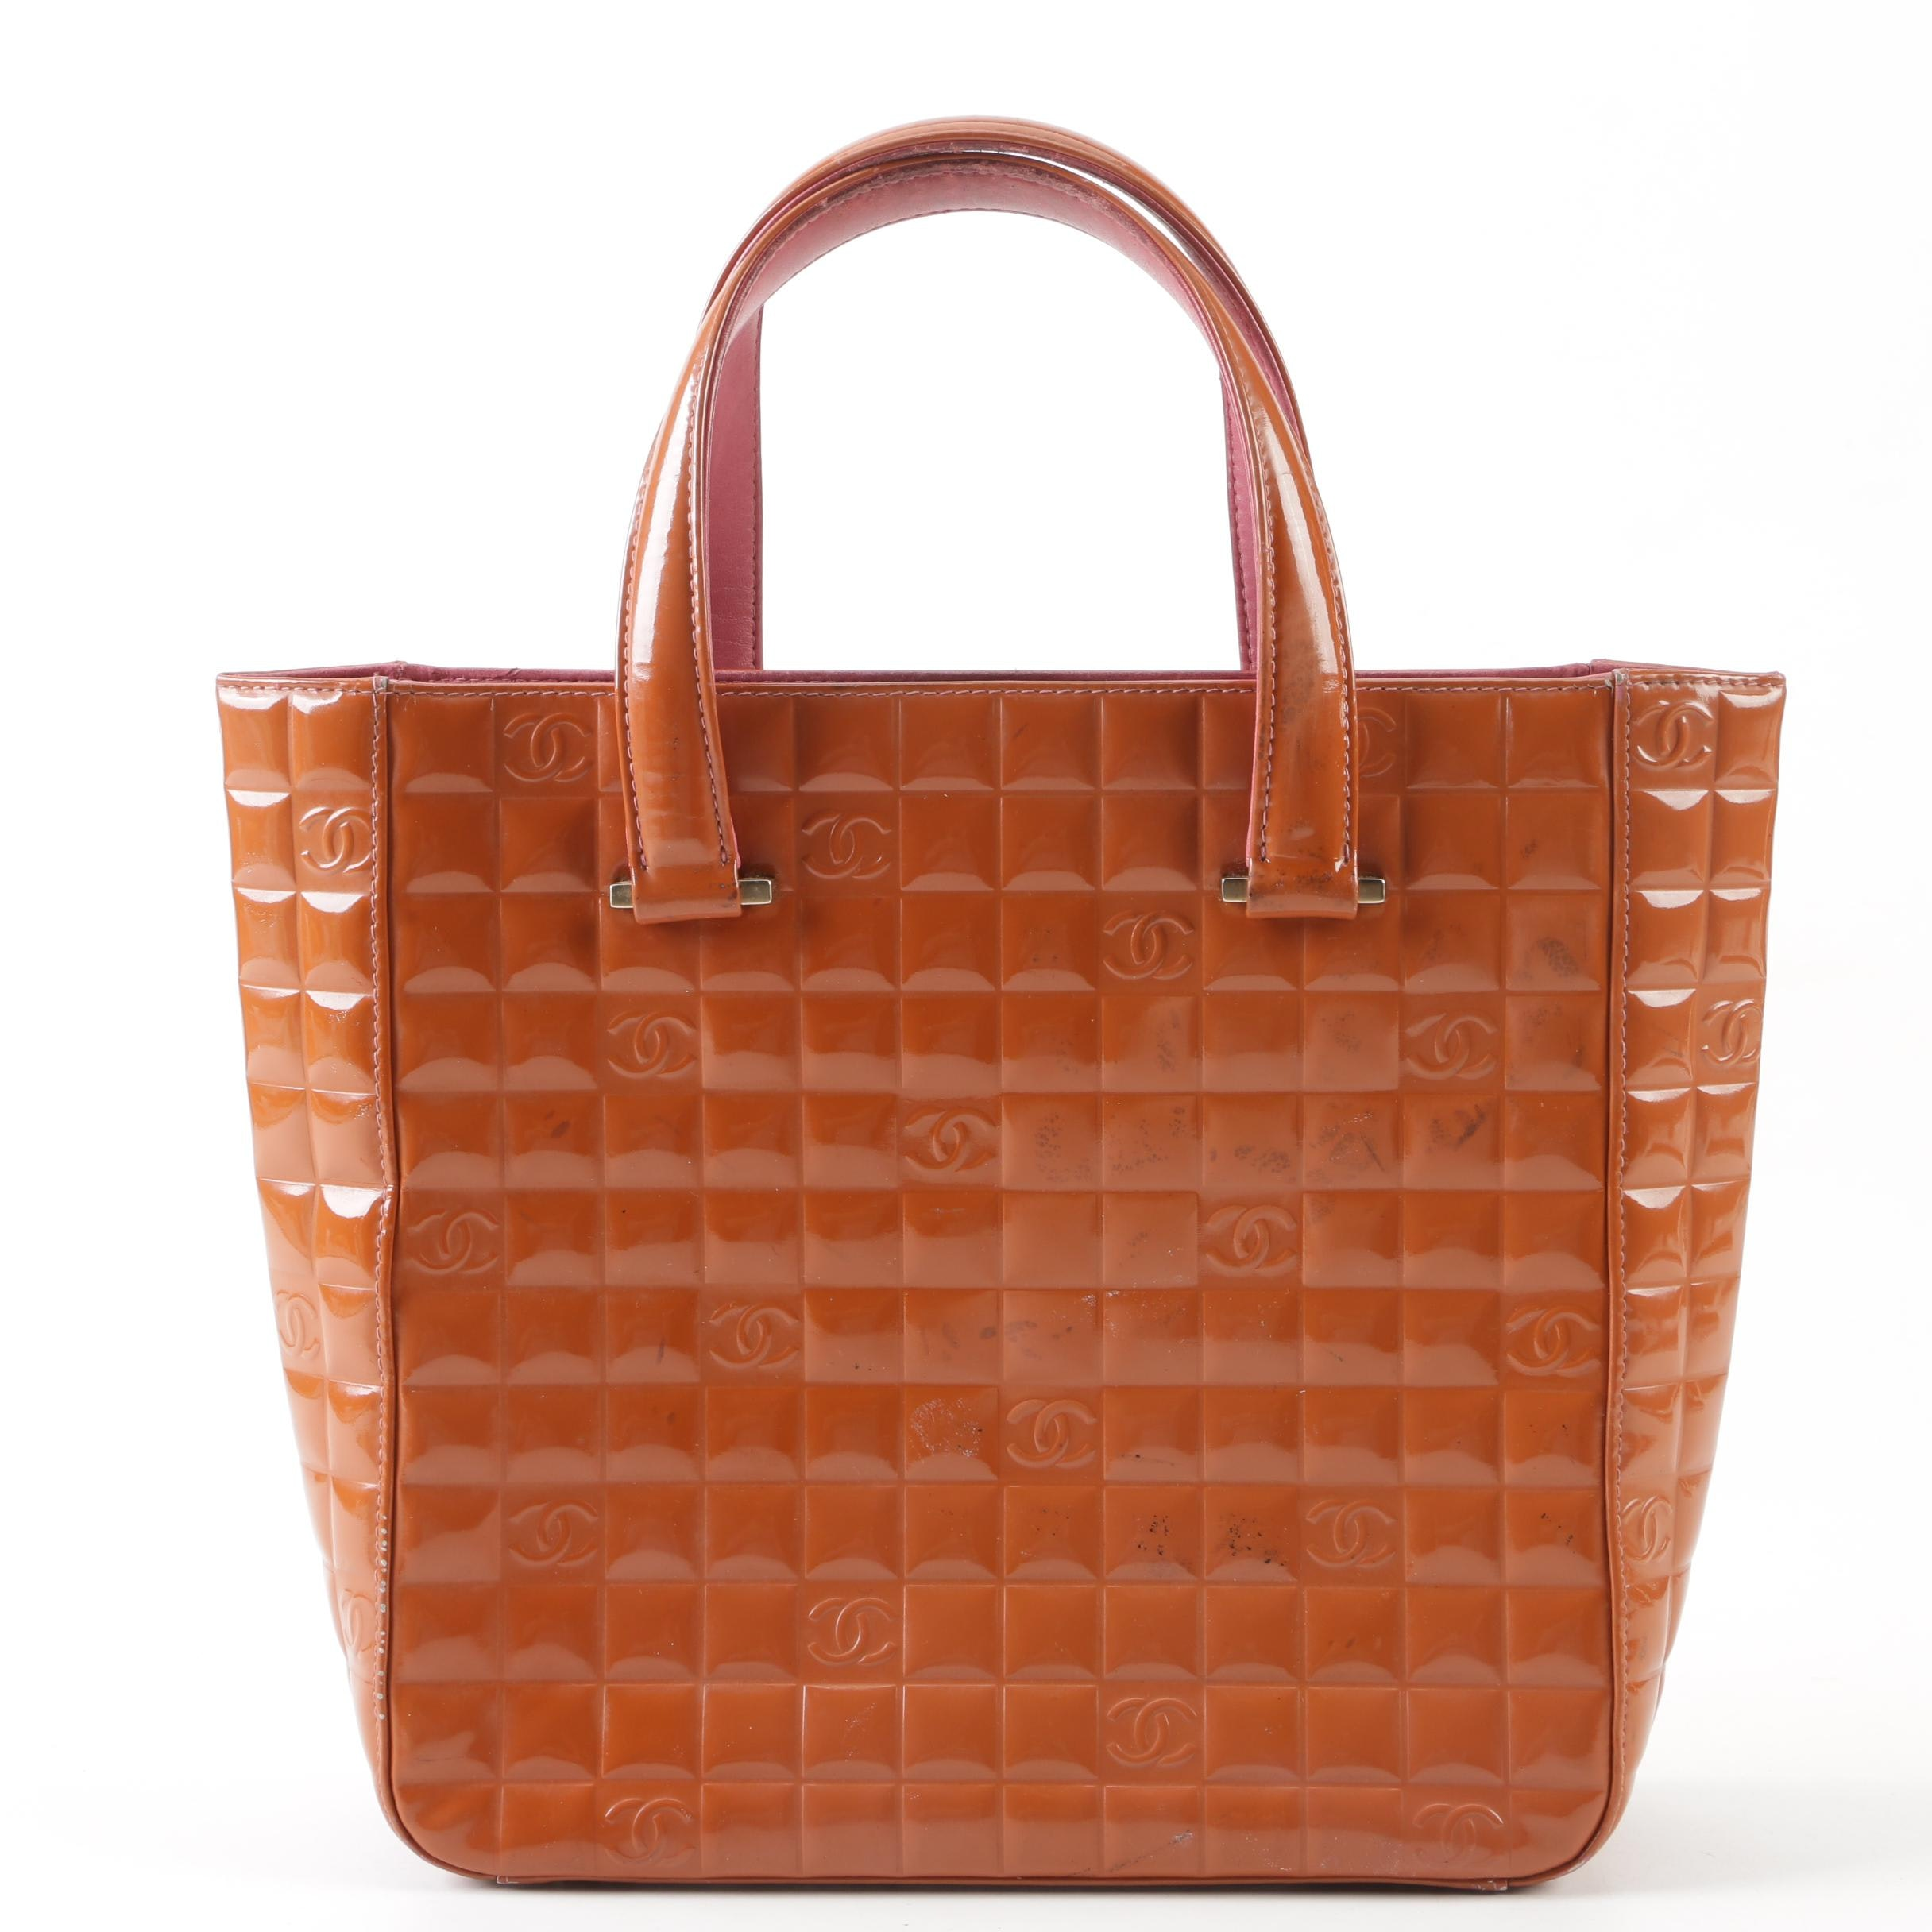 Chanel Quilted Rust Patent Leather Chocolate Bar Tote, Made in Italy